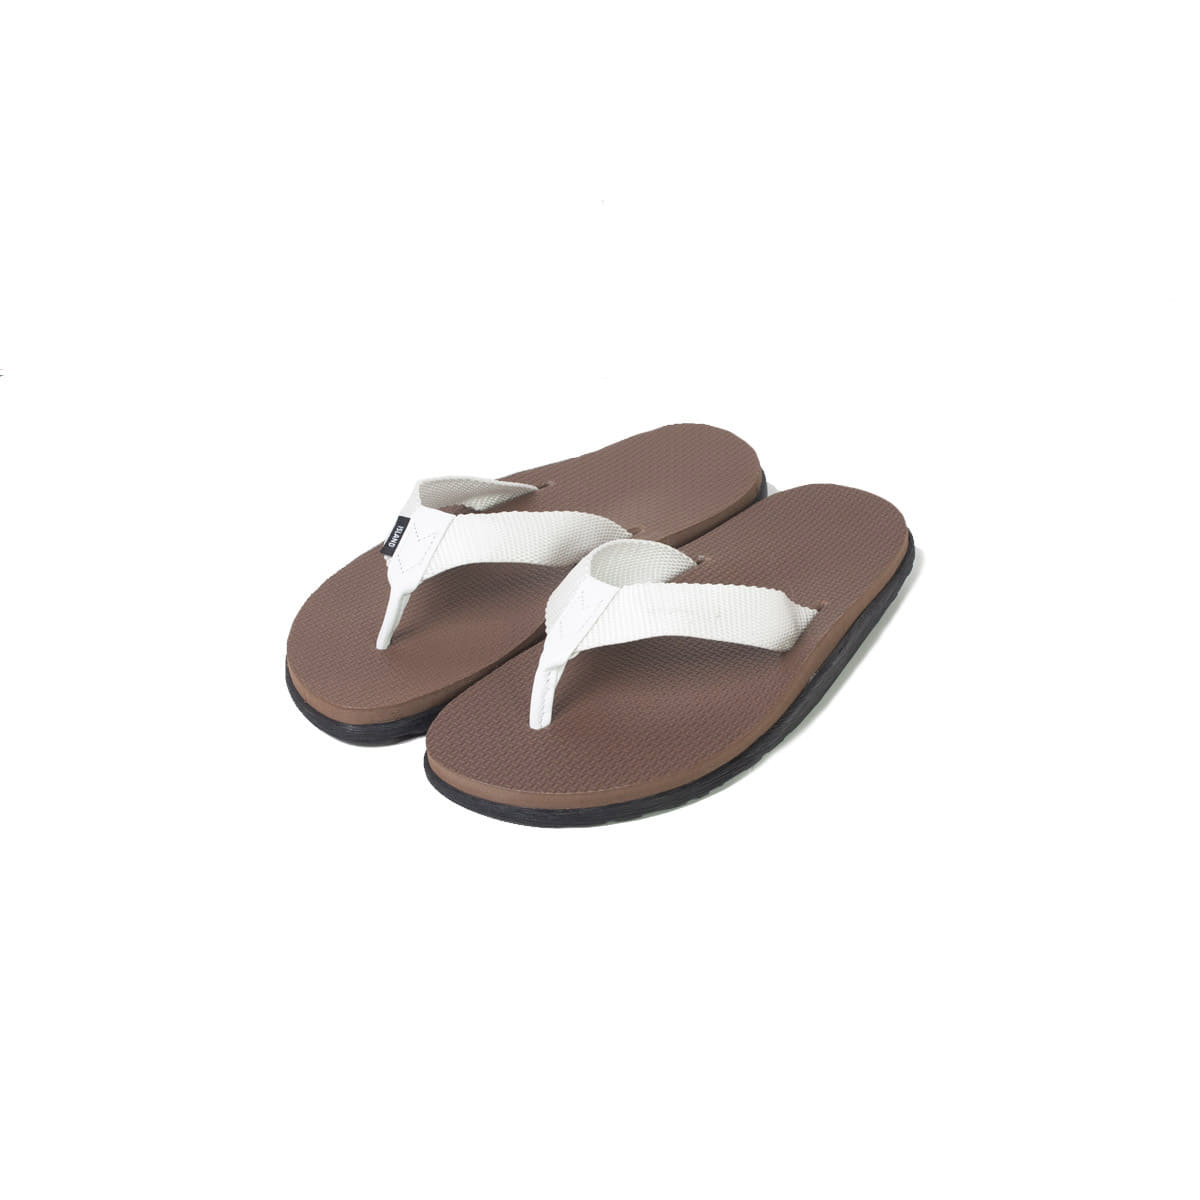 [ISLAND SLIPPER] K1P910LT 'WHITE'